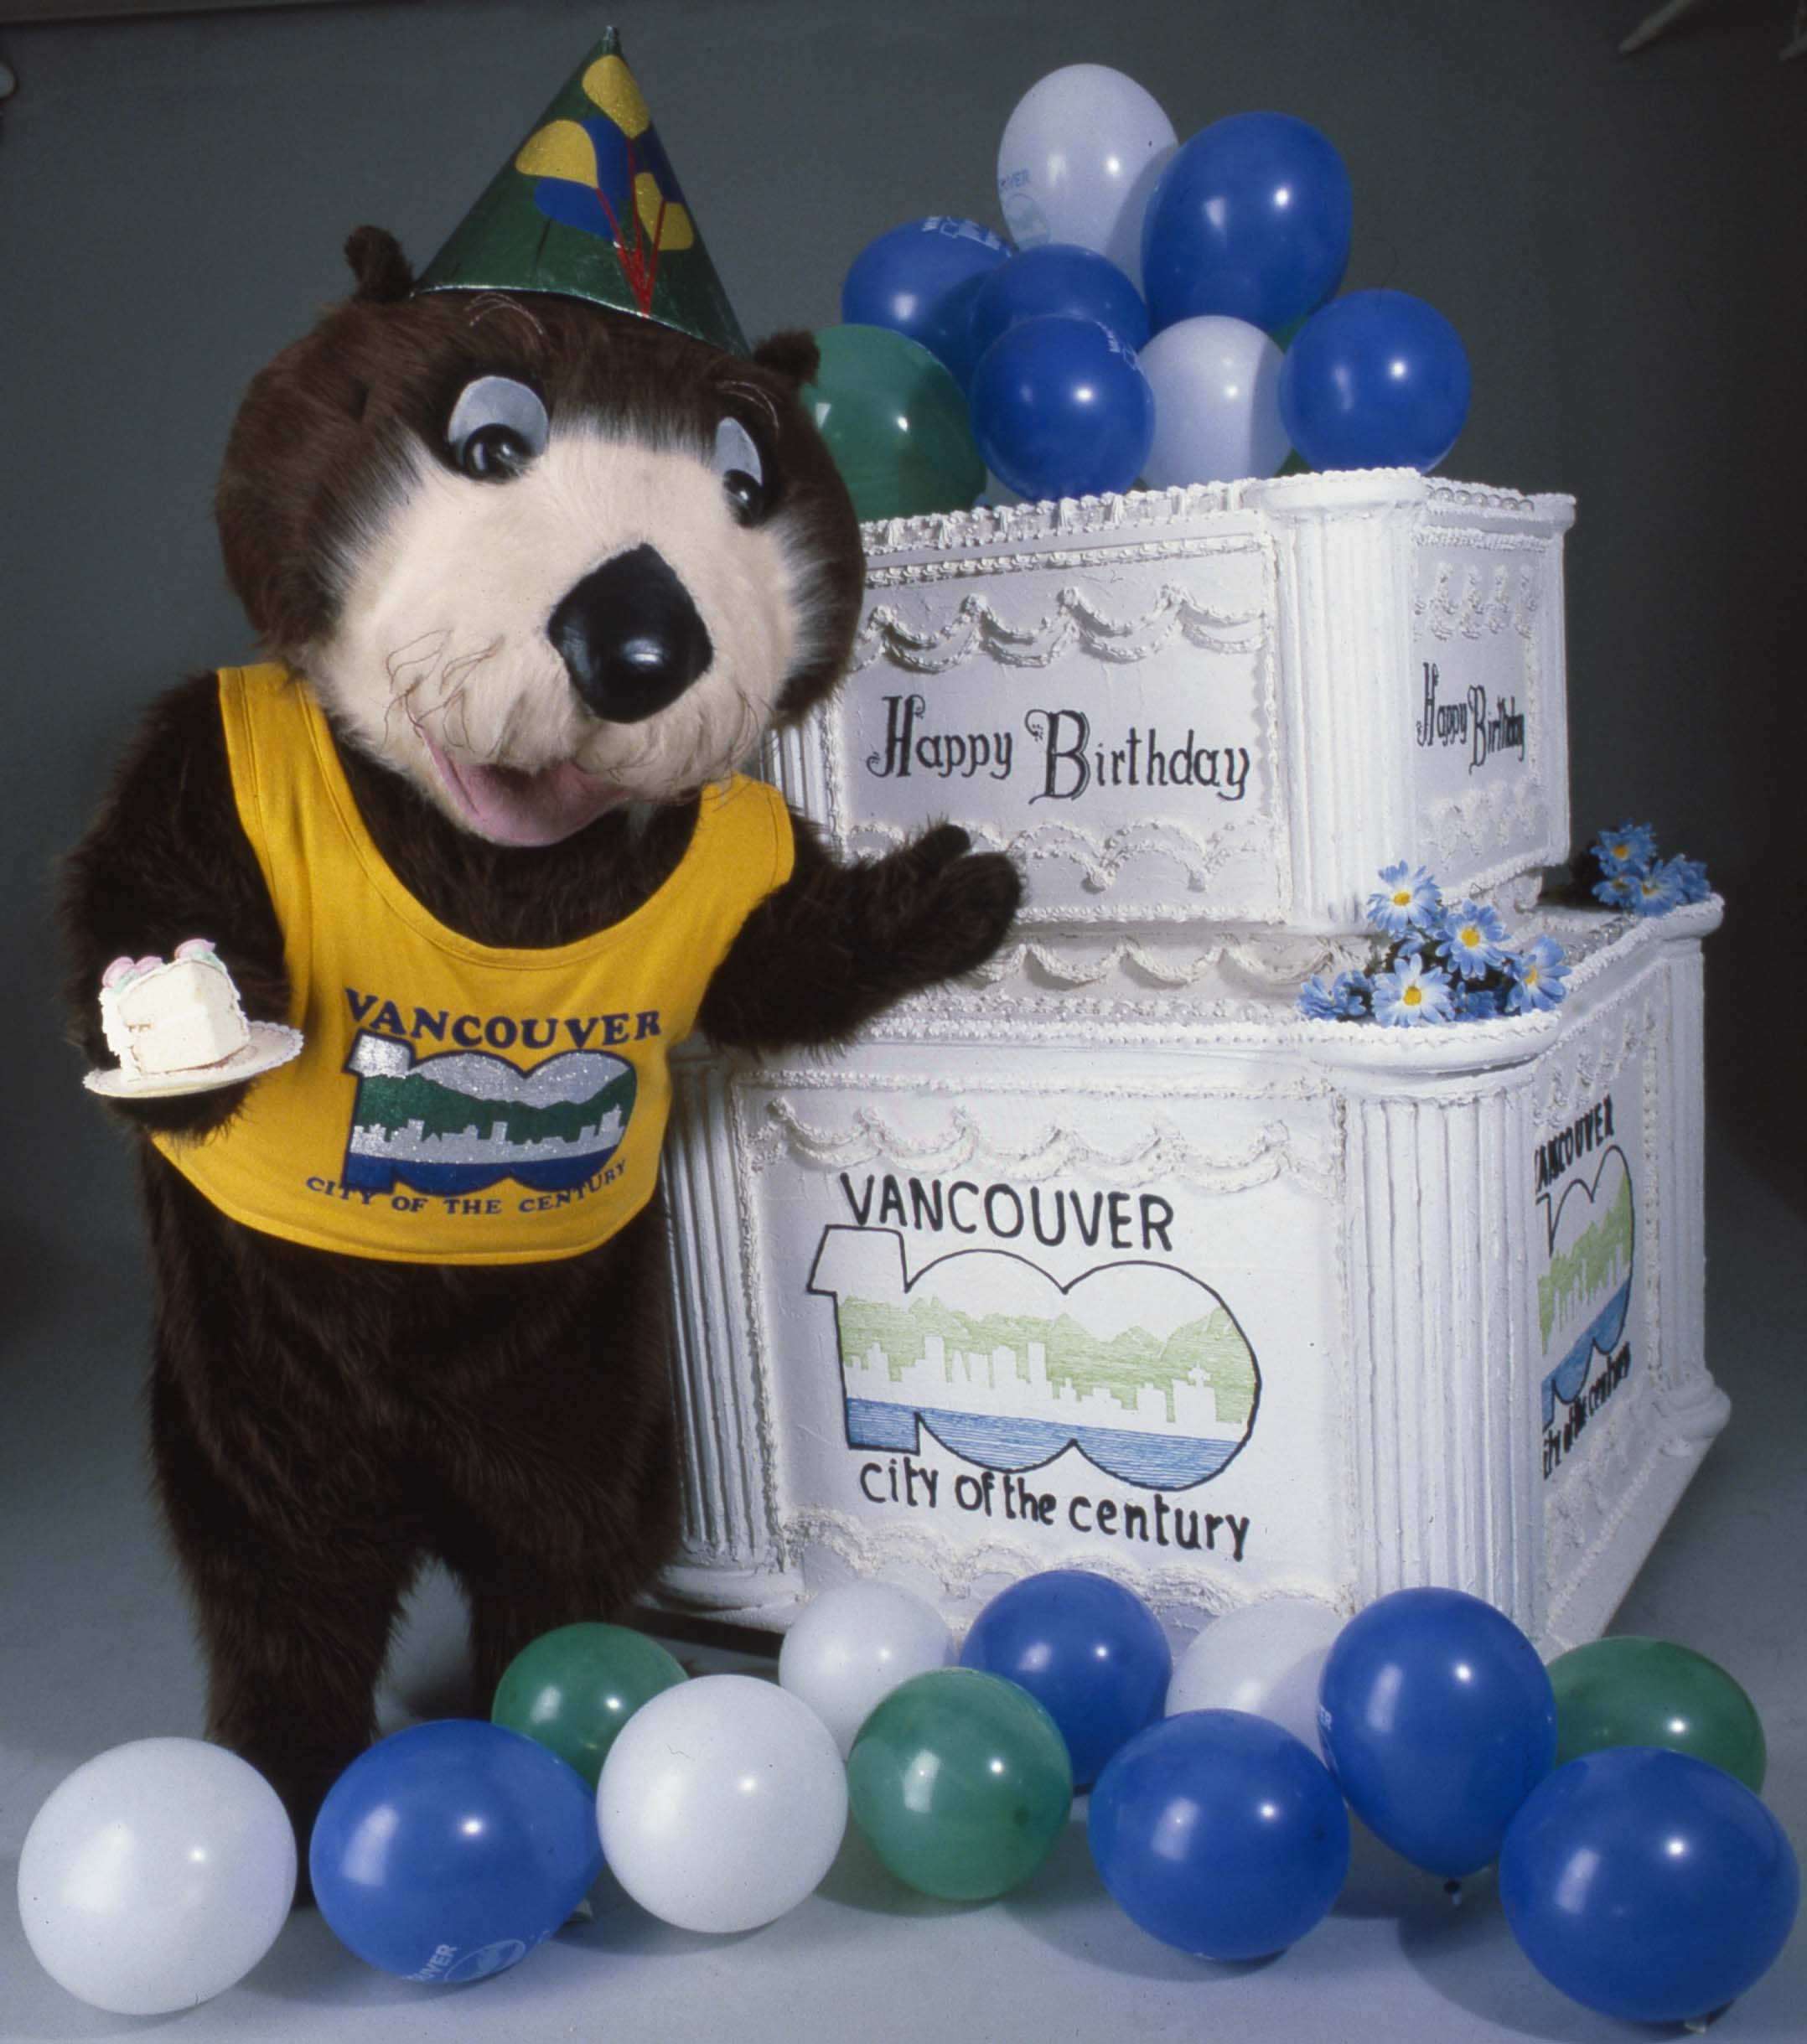 Tillicum the otter, mascot for the Vancouver Centennial Commission's celebrations. Identifier 2011-010.2218.